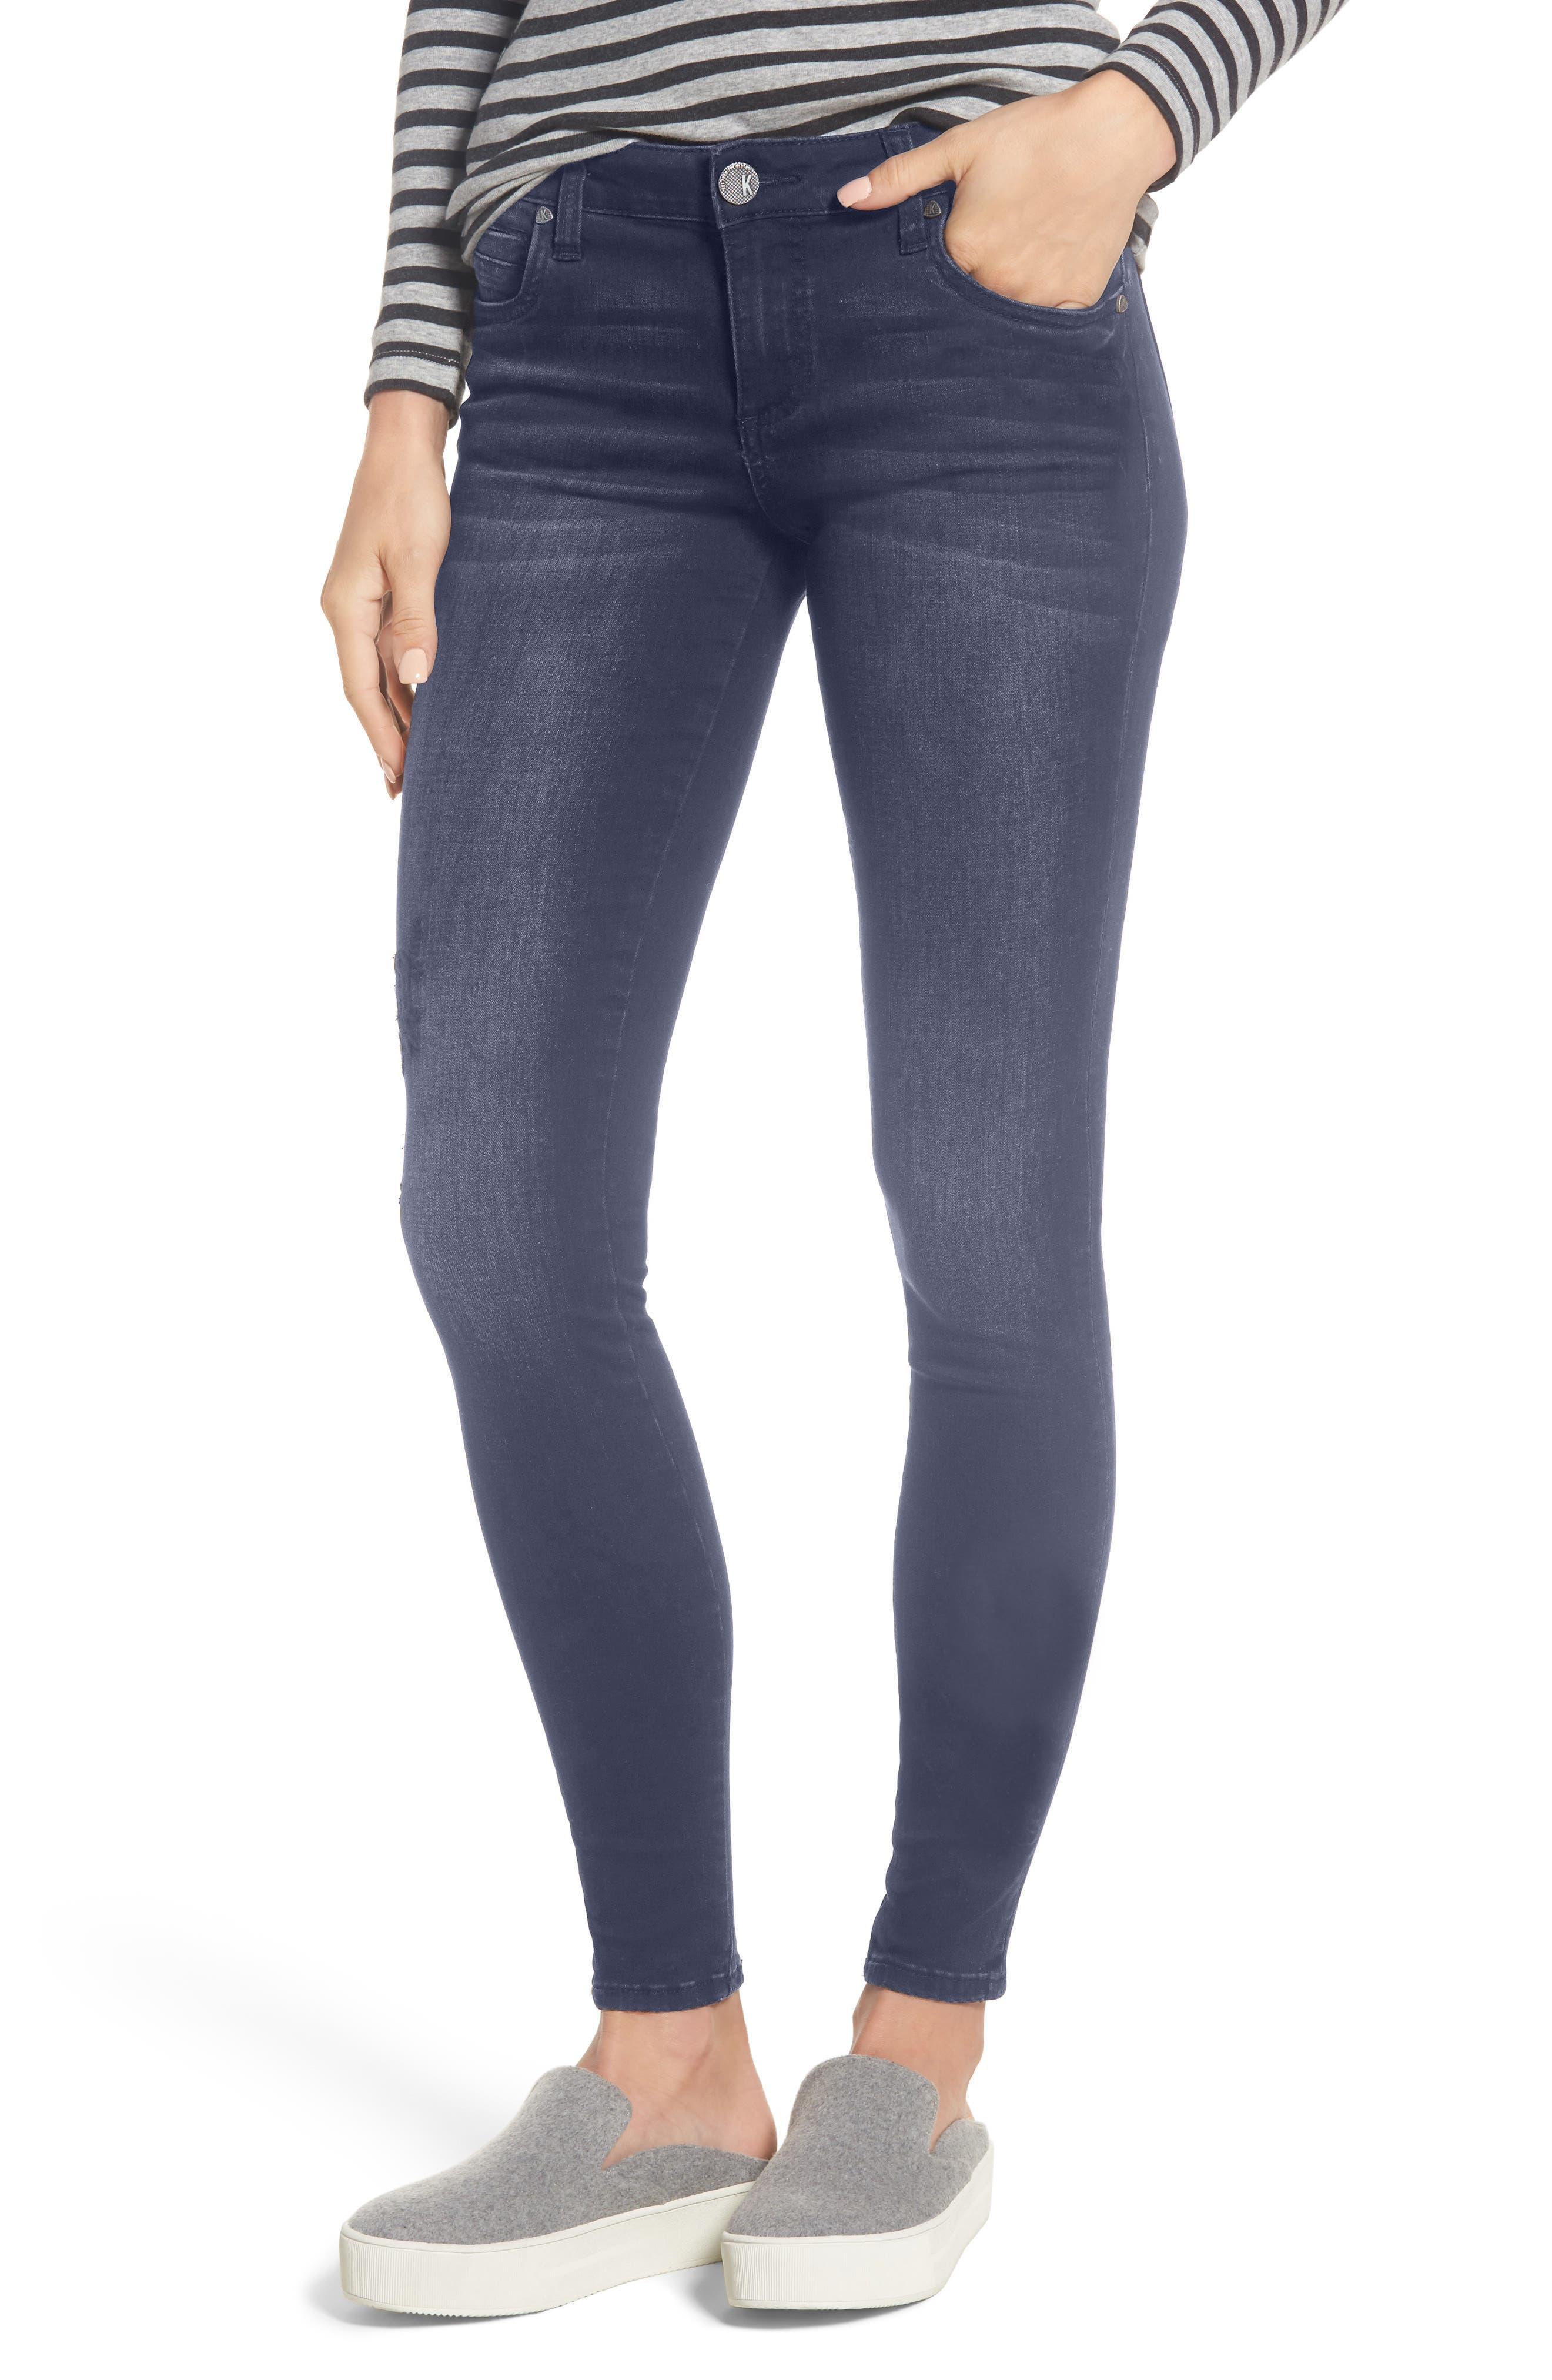 Alternate Image 1 Selected - KUT from the Kloth Mia Embroidered Skinny Jeans (Quintessential) (Regular & Petite)